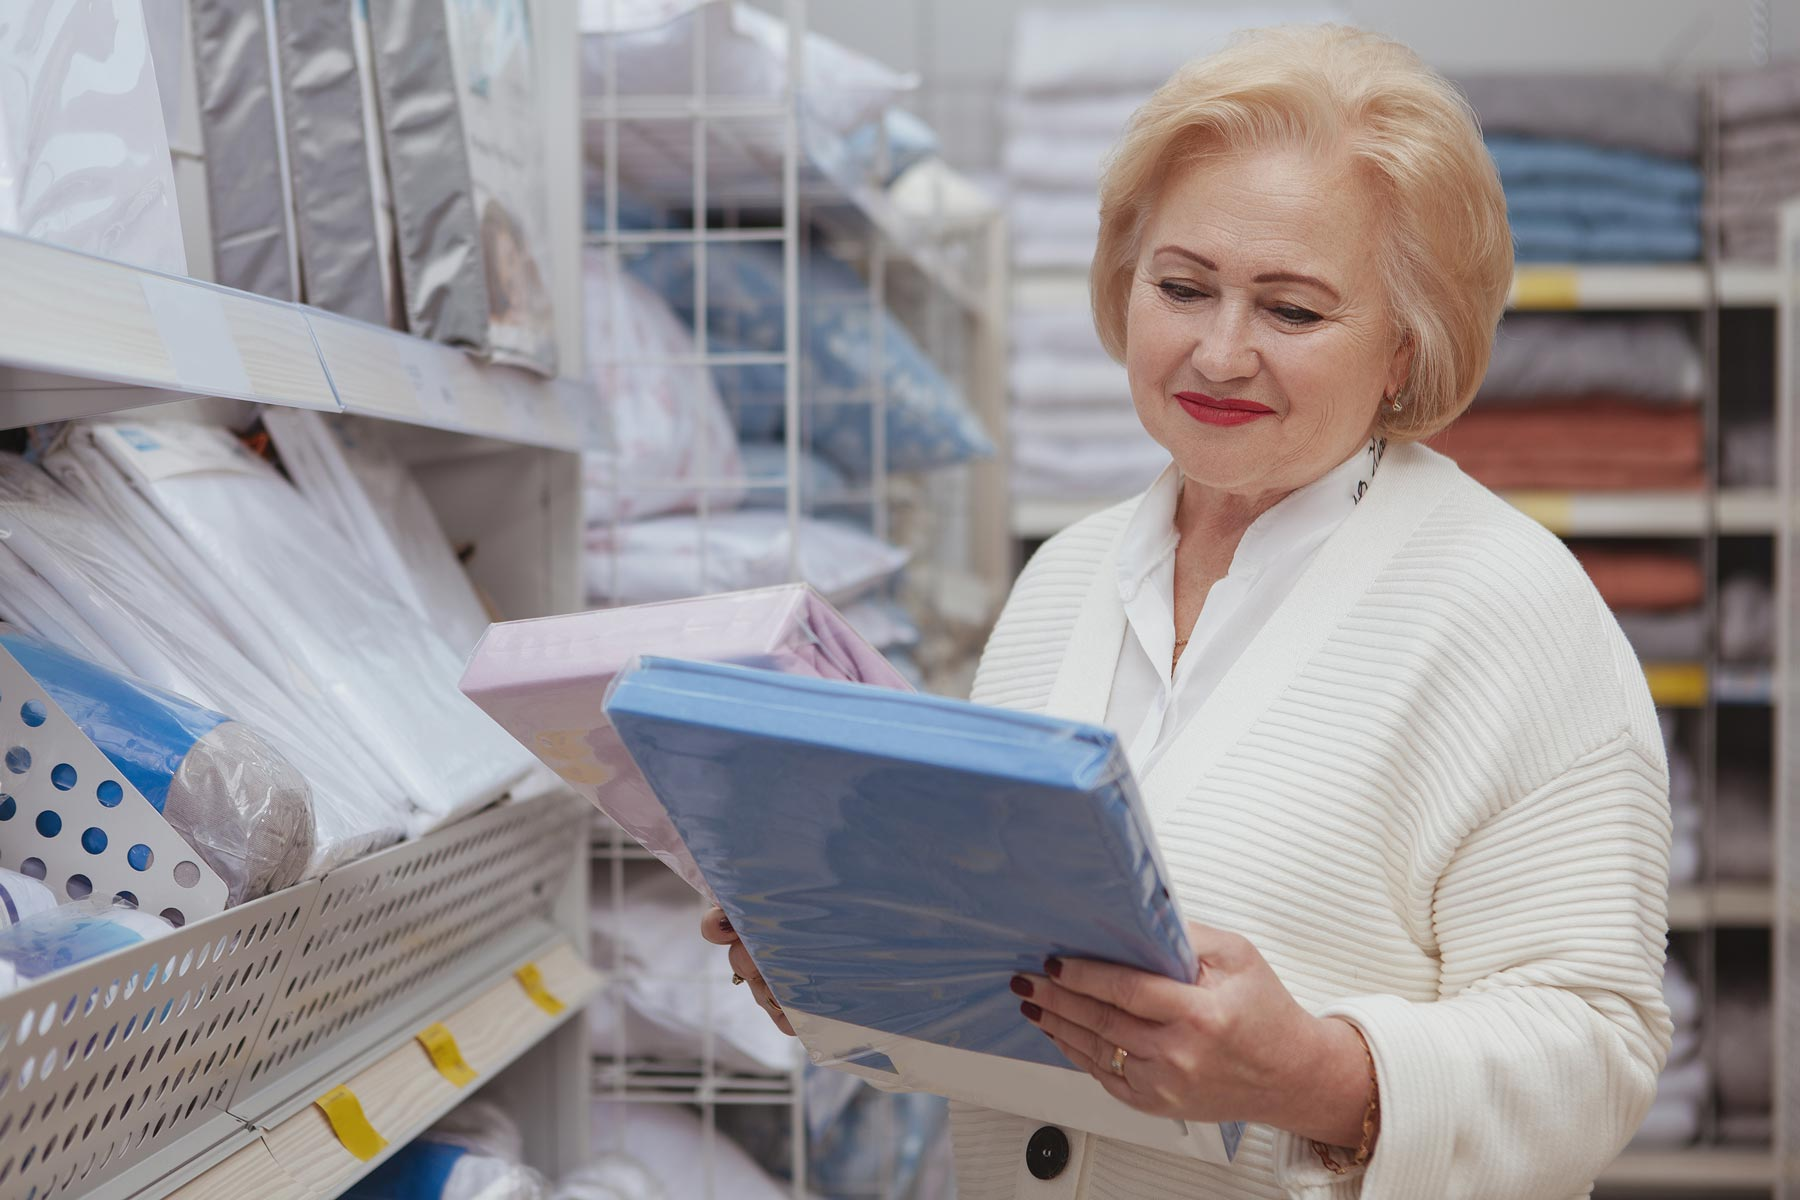 Senior woman shopping for items to decorate her retirement home apartment.